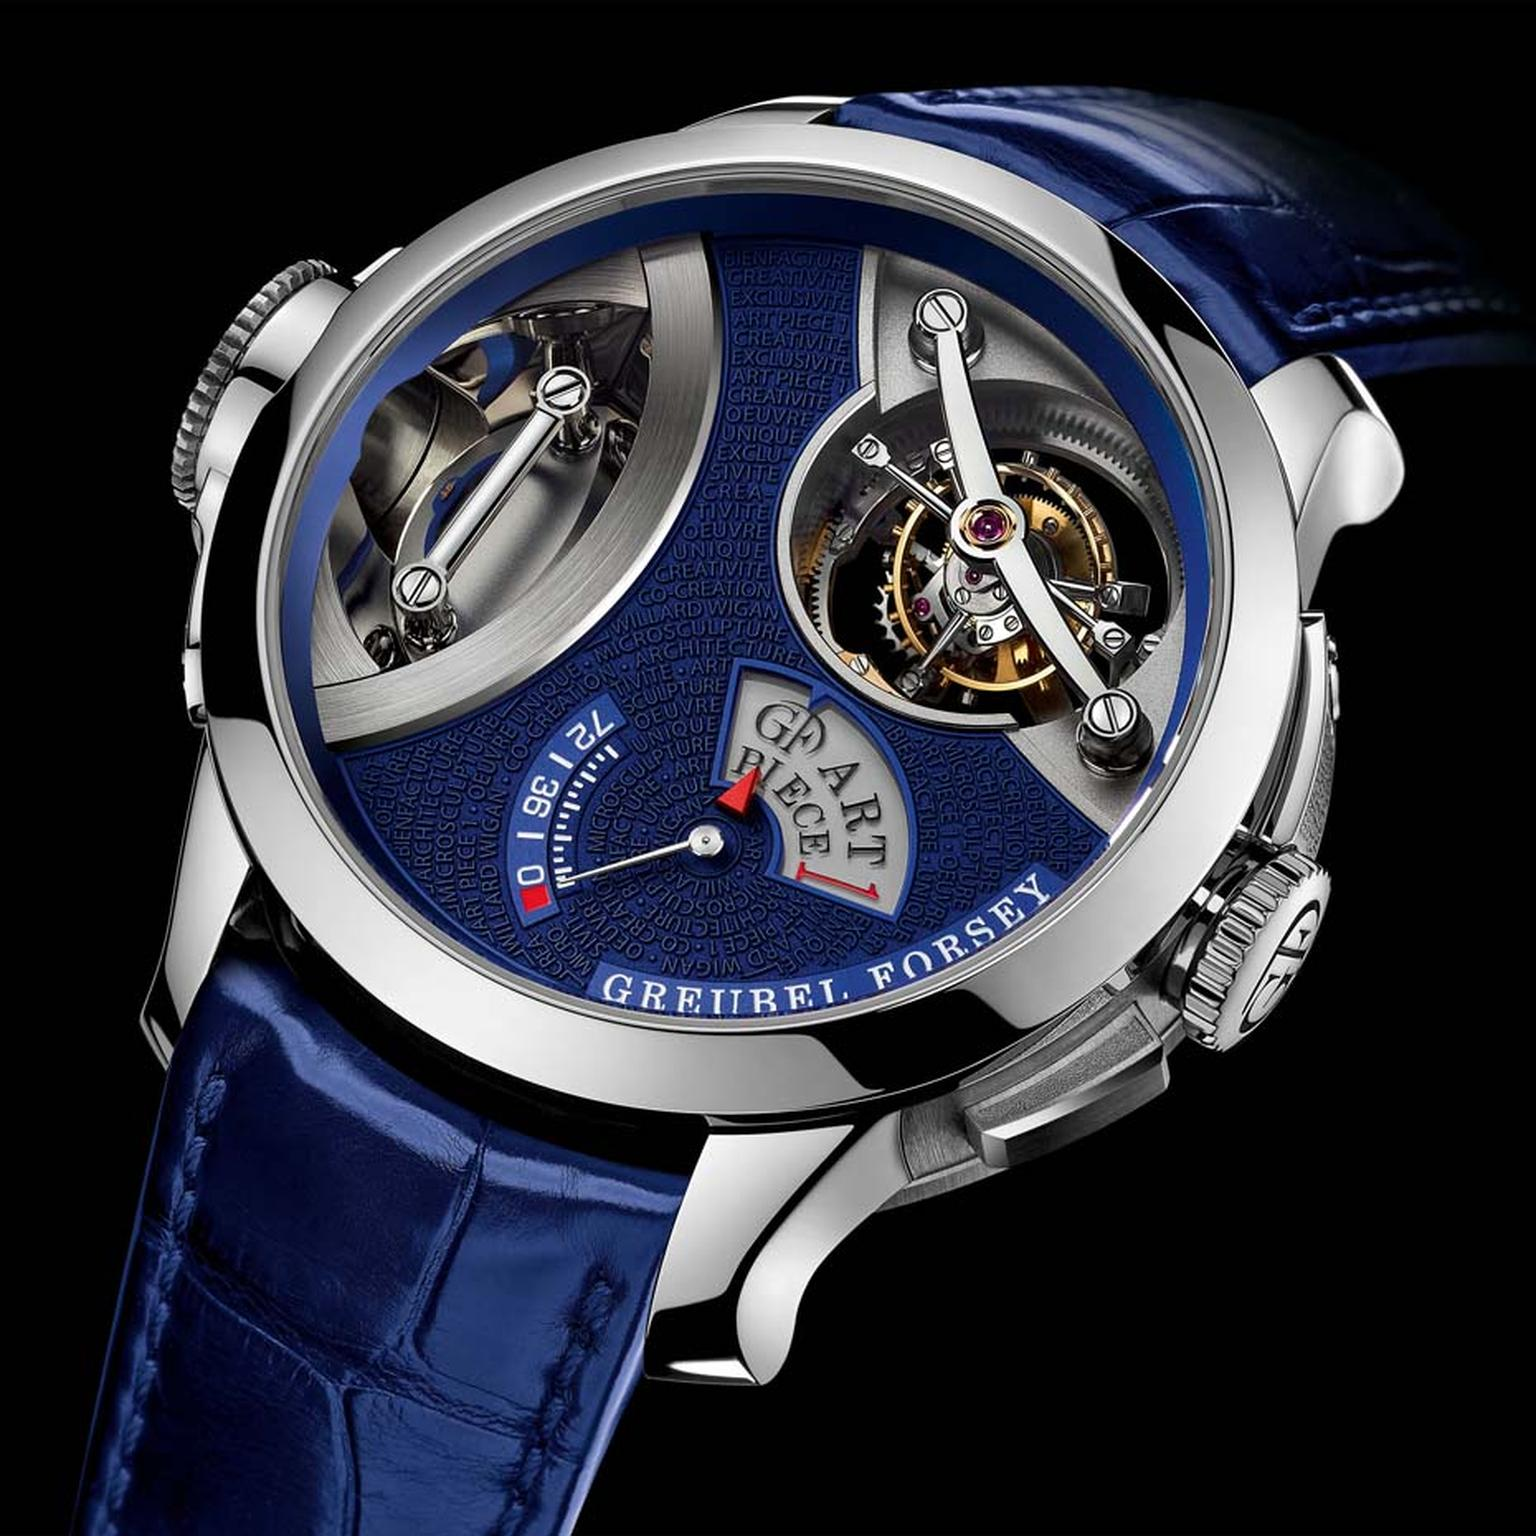 Greubel Forsey's Art Piece 1 watch incorporates a nano-sculpture of a gold caravel ship measuring a miniscule 0.31 x 0.95 x 1.22mm by British sculptor Willard Wigan.To view it, a microscope lens has been incorporated on the lateral crown.